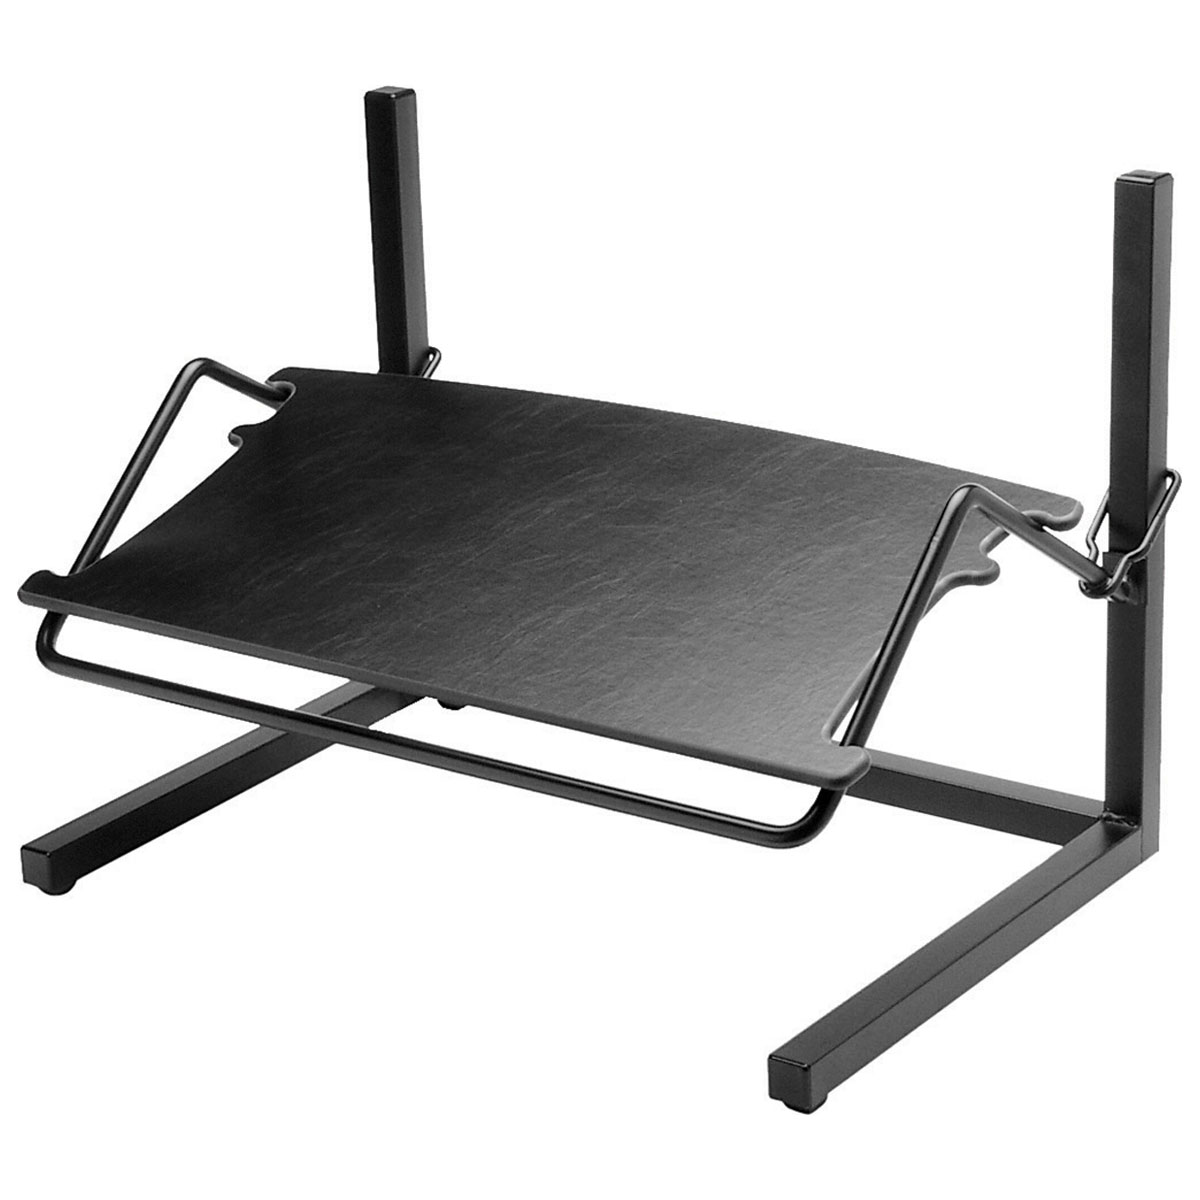 Workrite Height Amp Angle Footrest 215